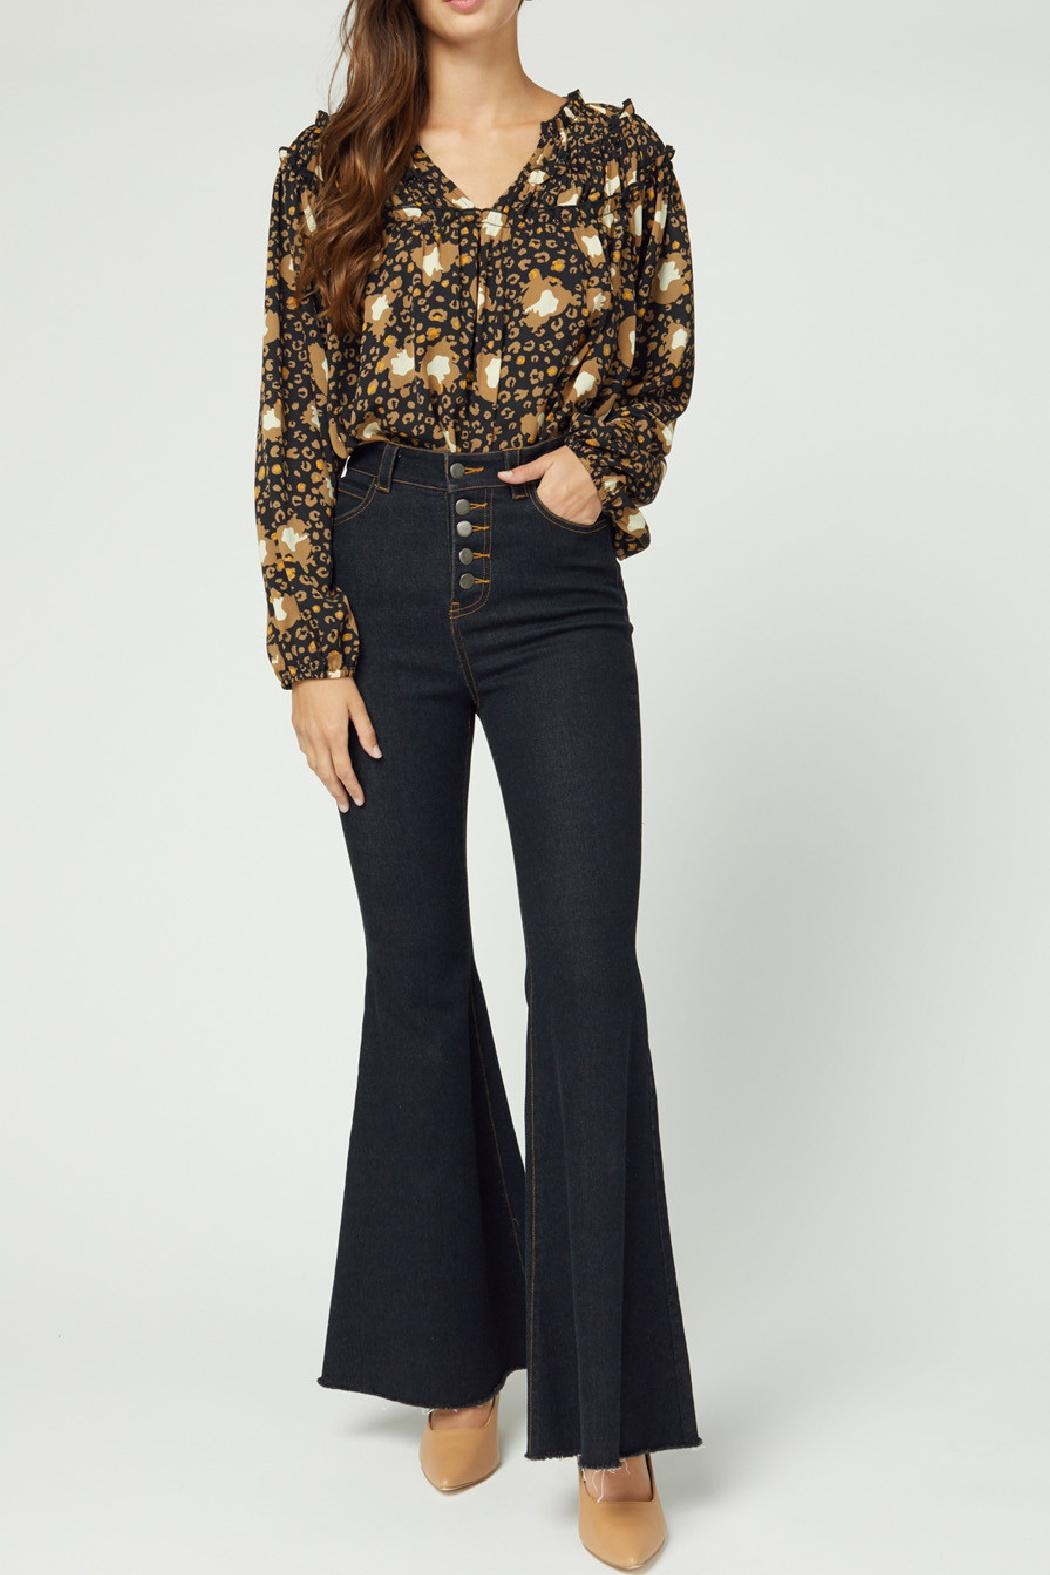 Entro Printed Ruffle Top - Front Full Image